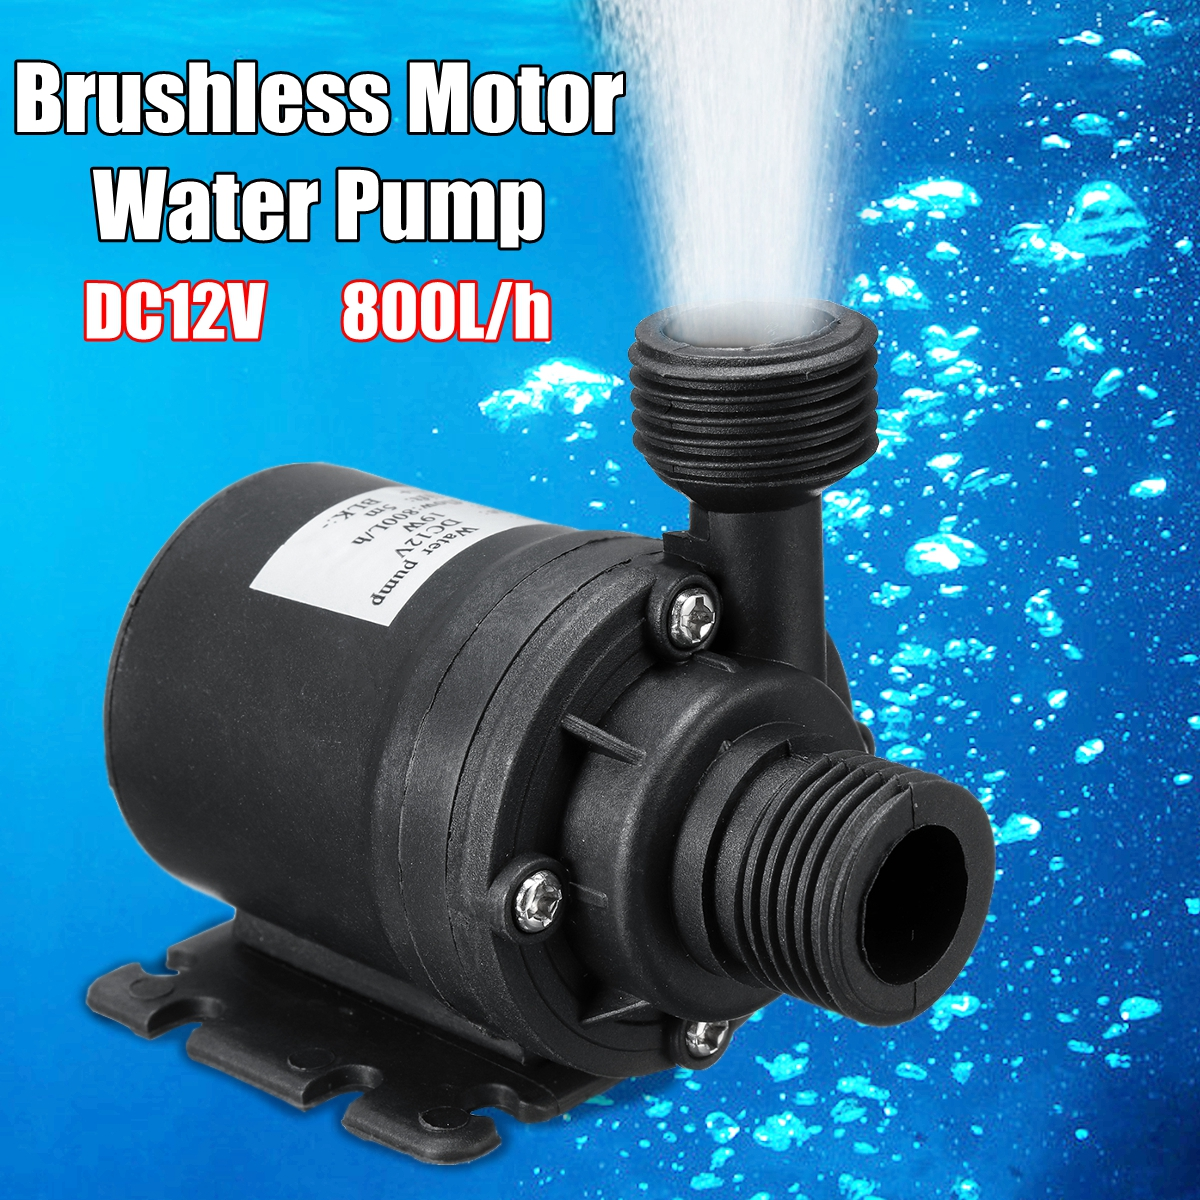 DC 12V 5M 800L/H Mini Brushless Motor Ultra-quiet Submersible Water Pump Portable For Cooling System Fountains Heater